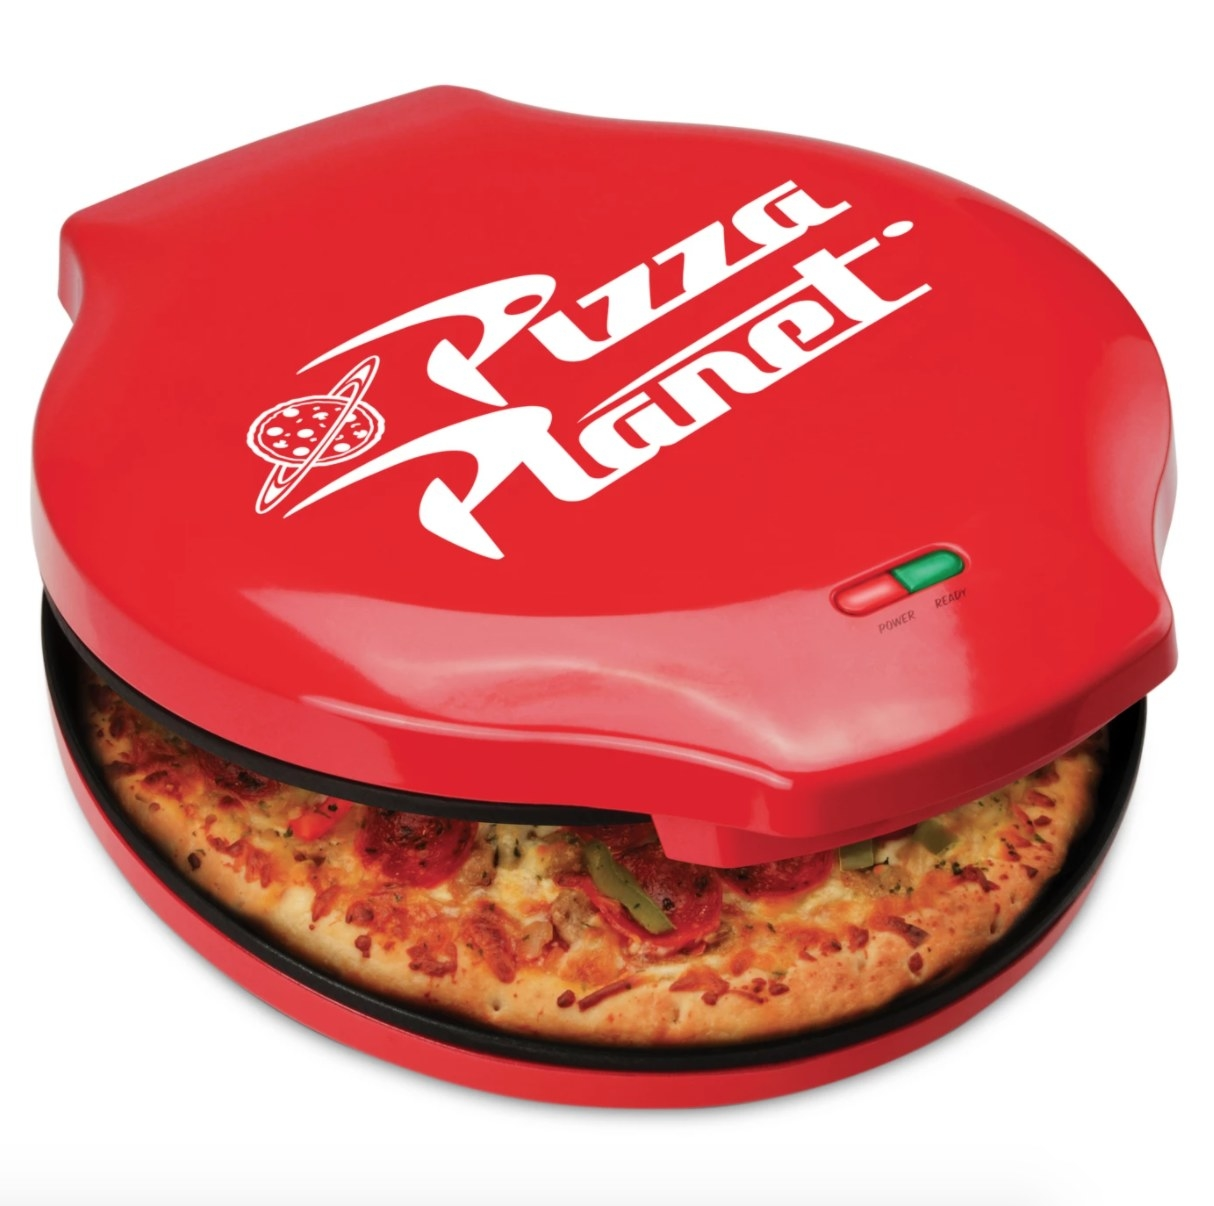 A countertop pizza maker with red outside and Pizza Planet logo on top